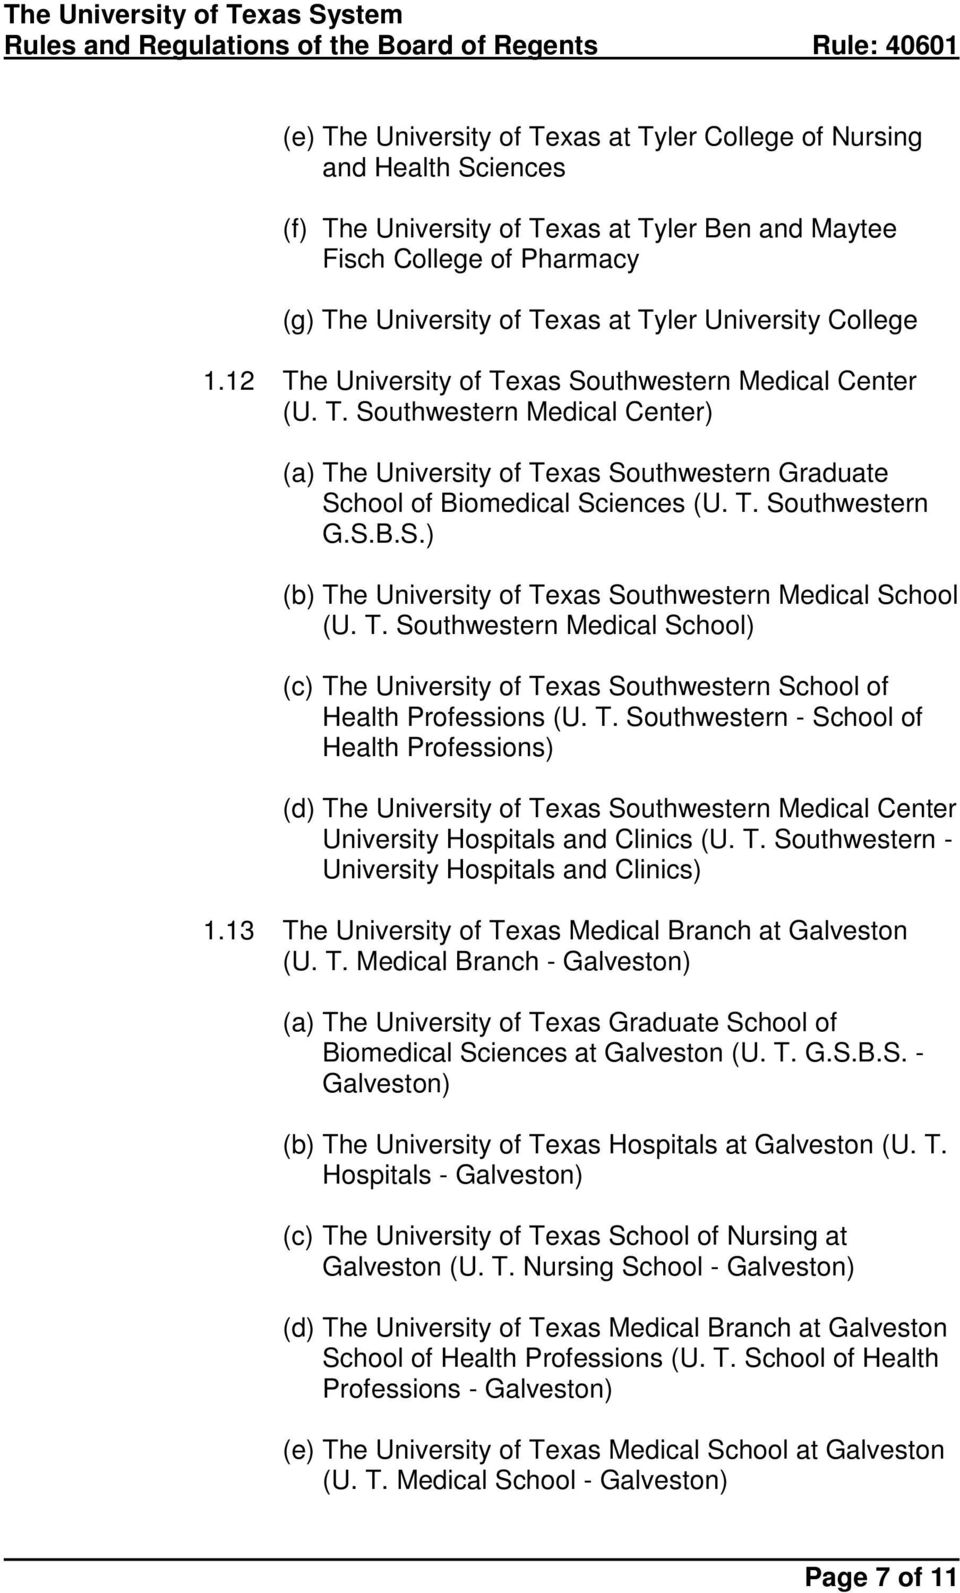 T. Southwestern Medical School) (c) The University of Texas Southwestern School of Health Professions (U. T. Southwestern - School of Health Professions) (d) The University of Texas Southwestern Medical Center University Hospitals and Clinics (U.